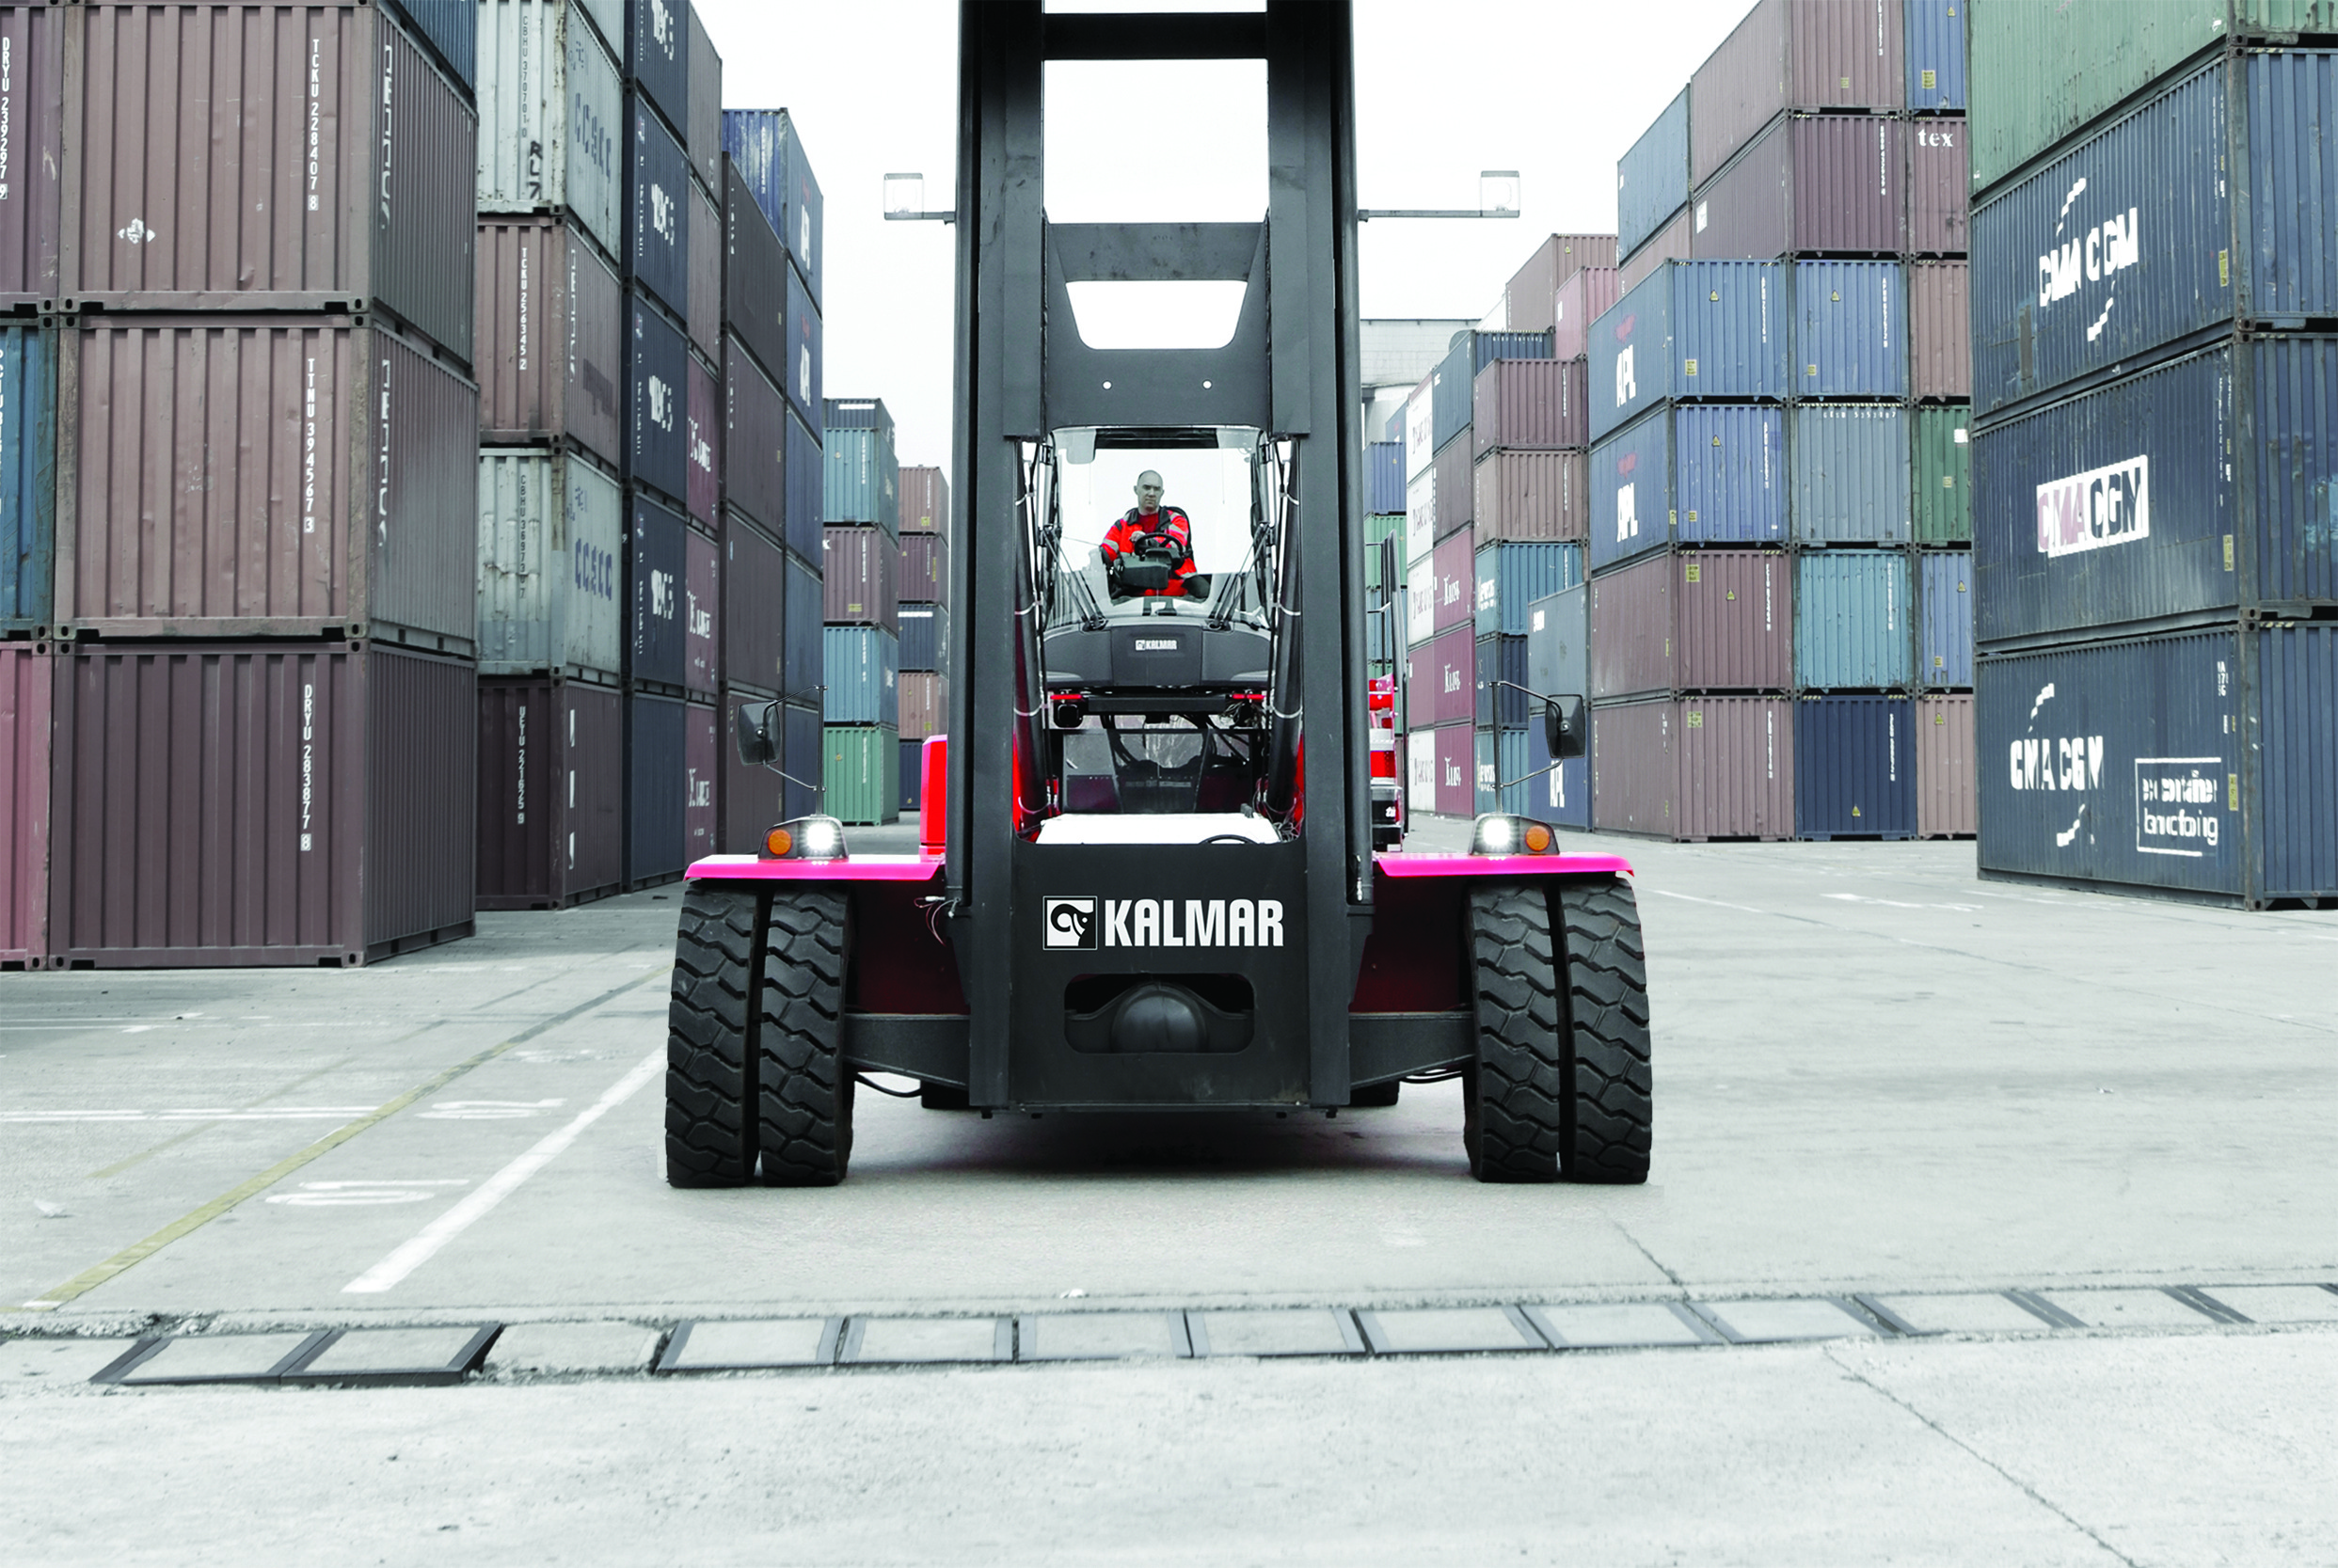 Kalmar will deploy a new fleet of equipment at DP World's terminal